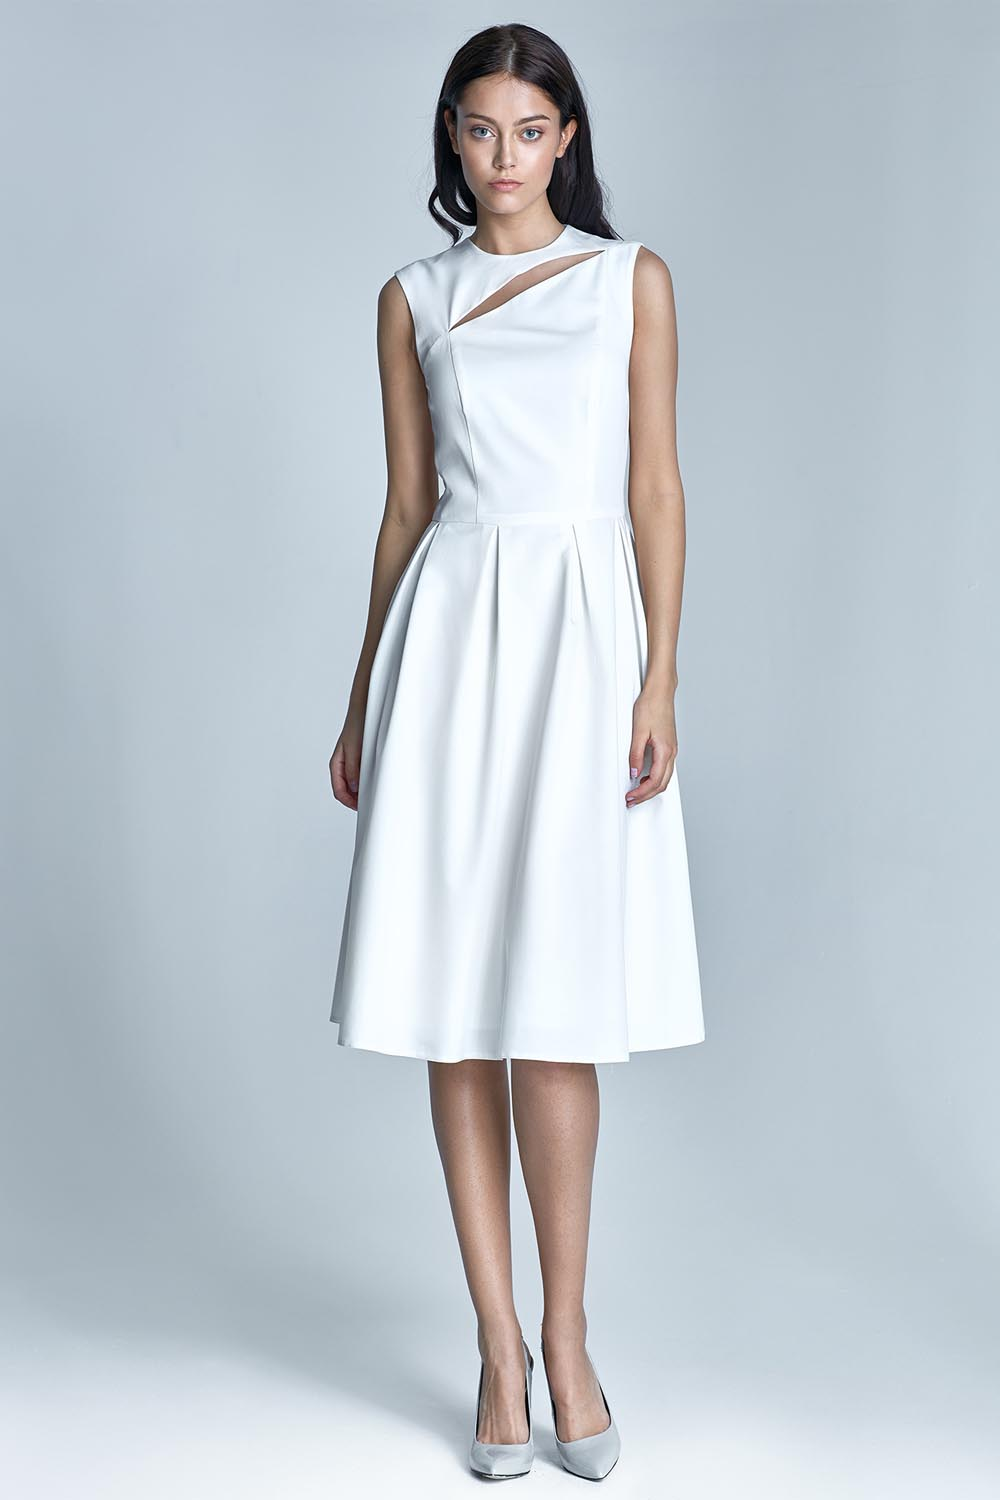 Off white pleated dress with cut out neckline